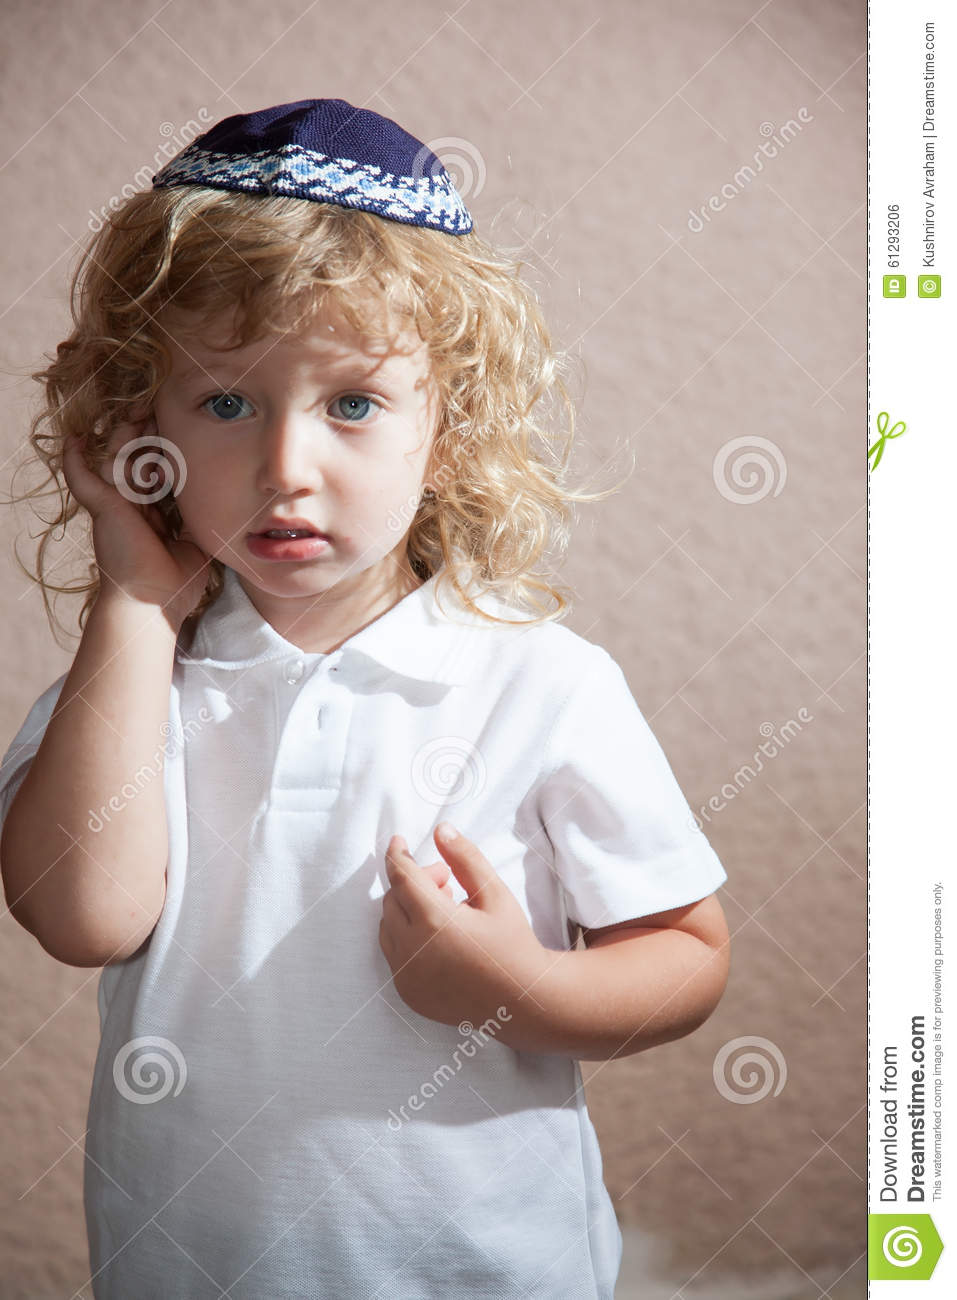 The Boy With Blond Curls In The Jewish Yarmulke Stock